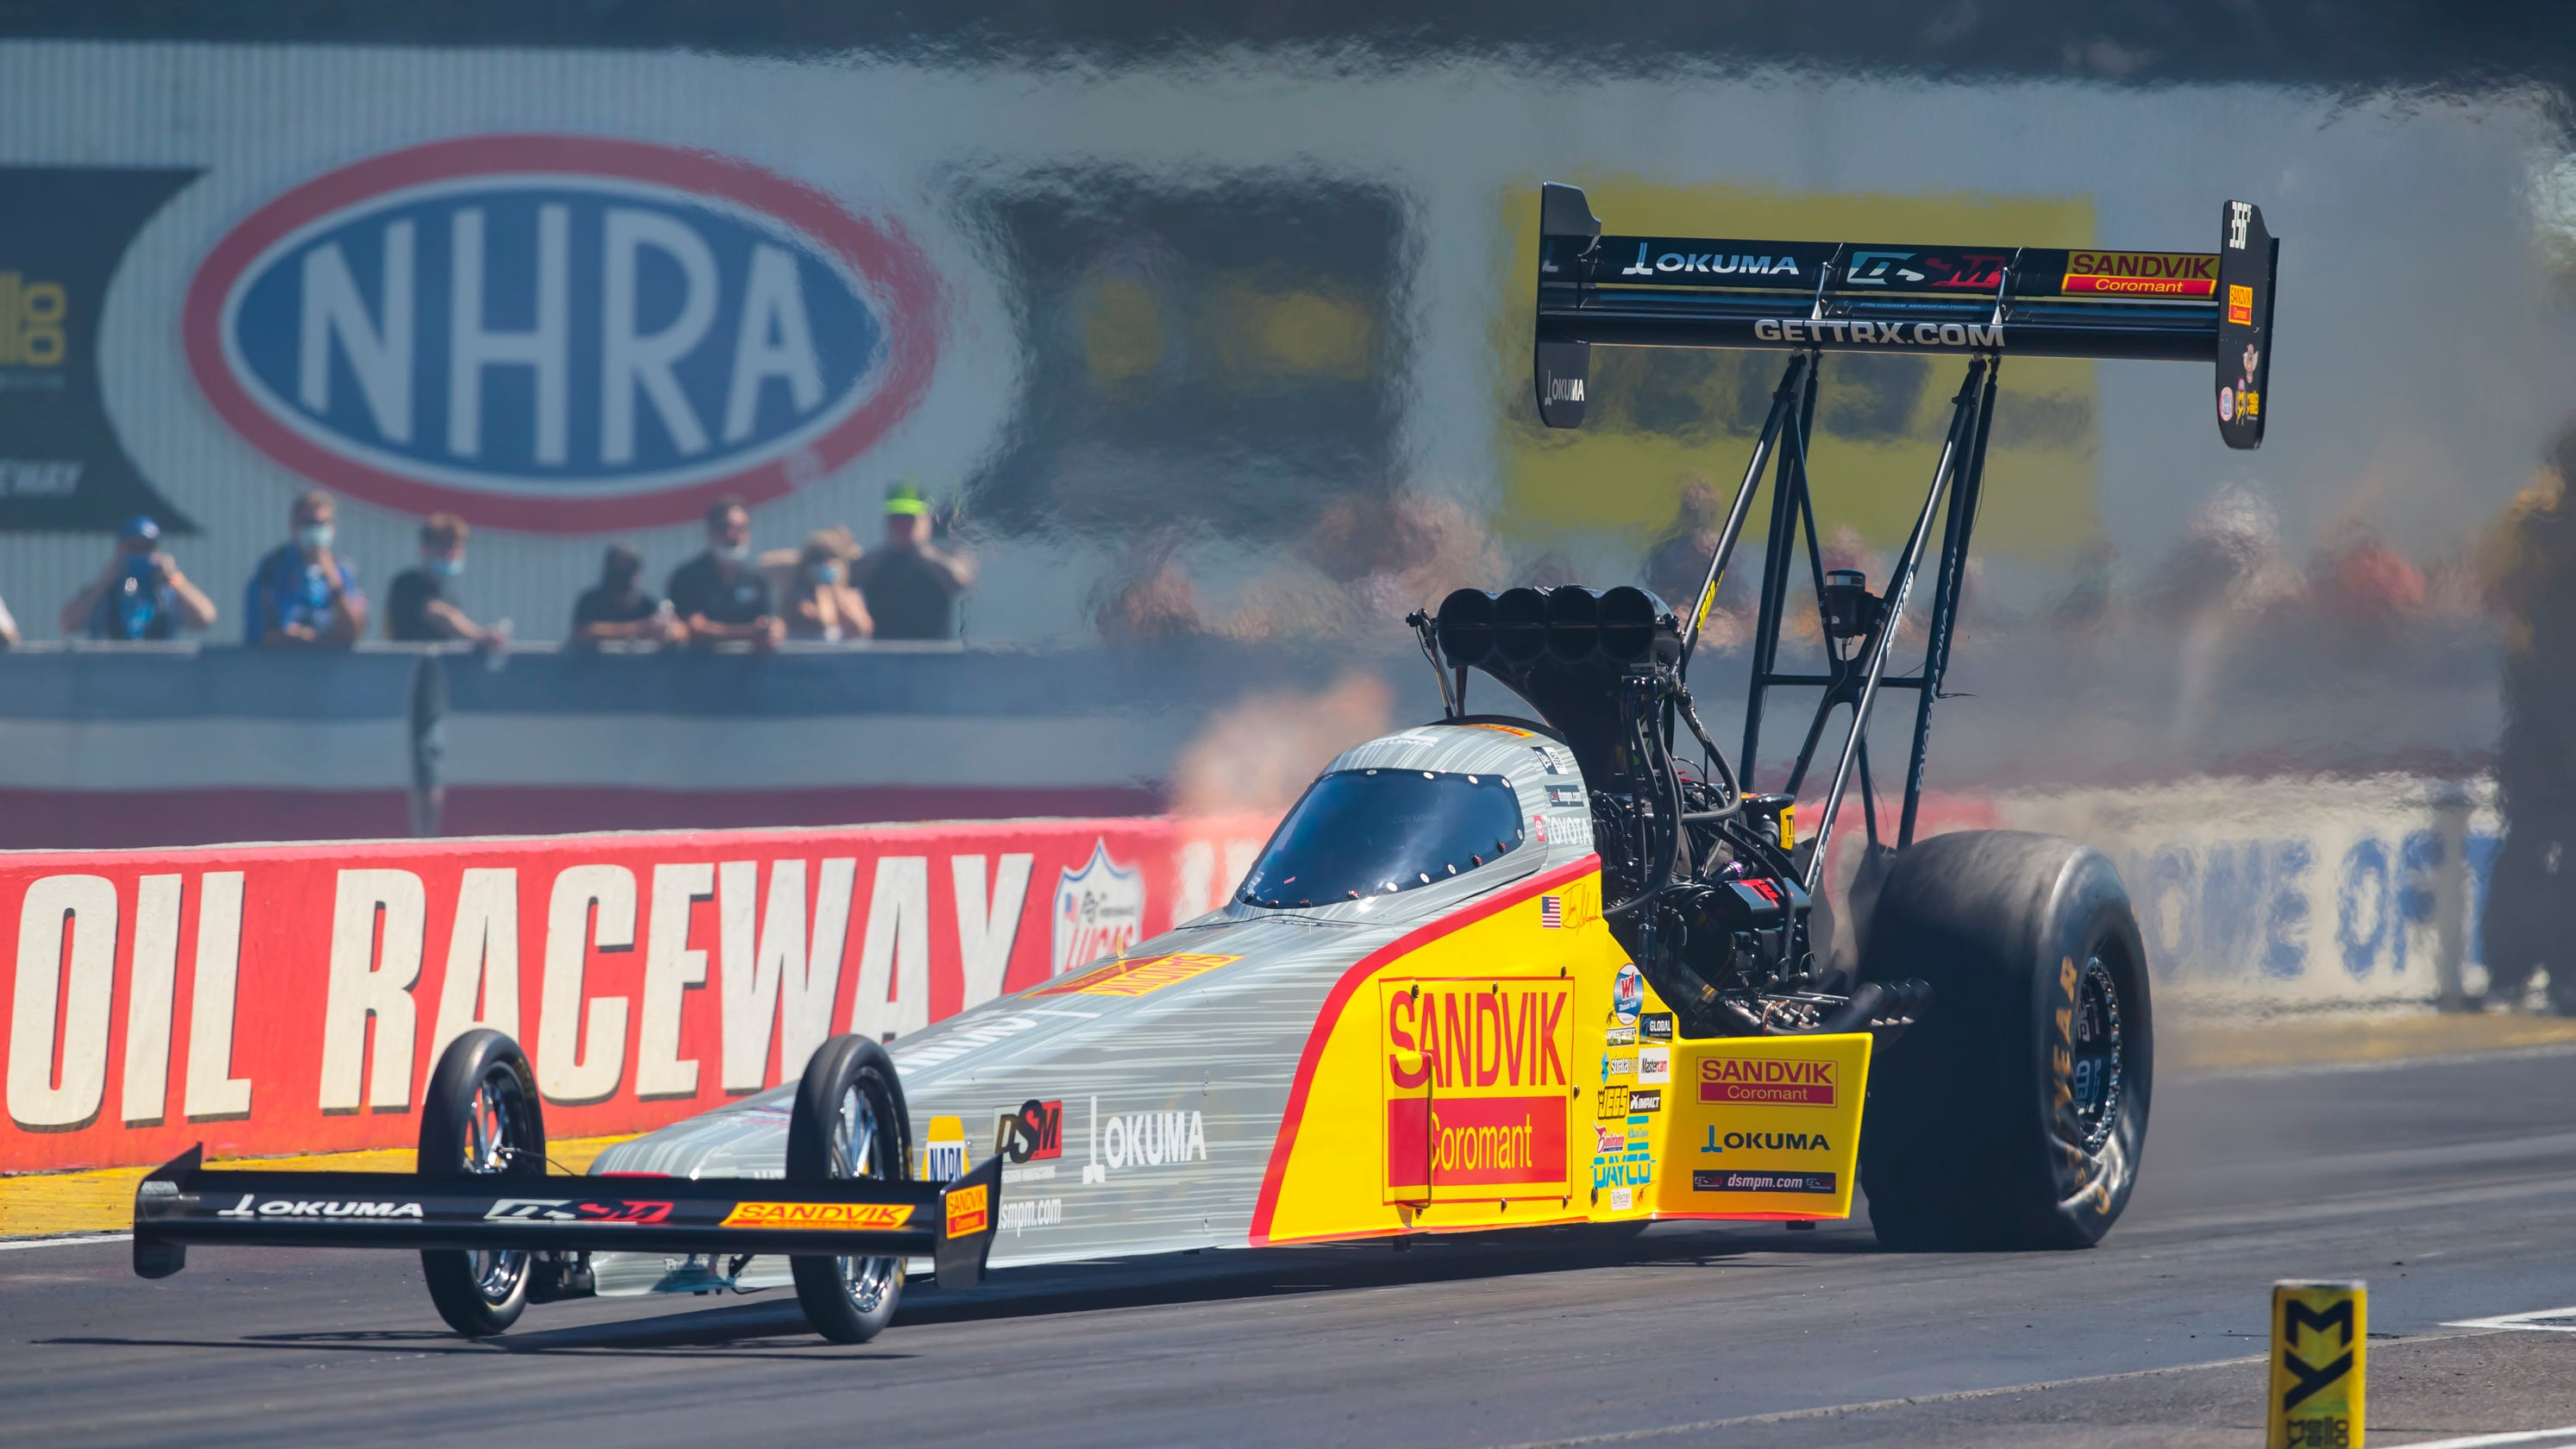 NHRA sues Coca-Cola for terminating contract with drag racing series